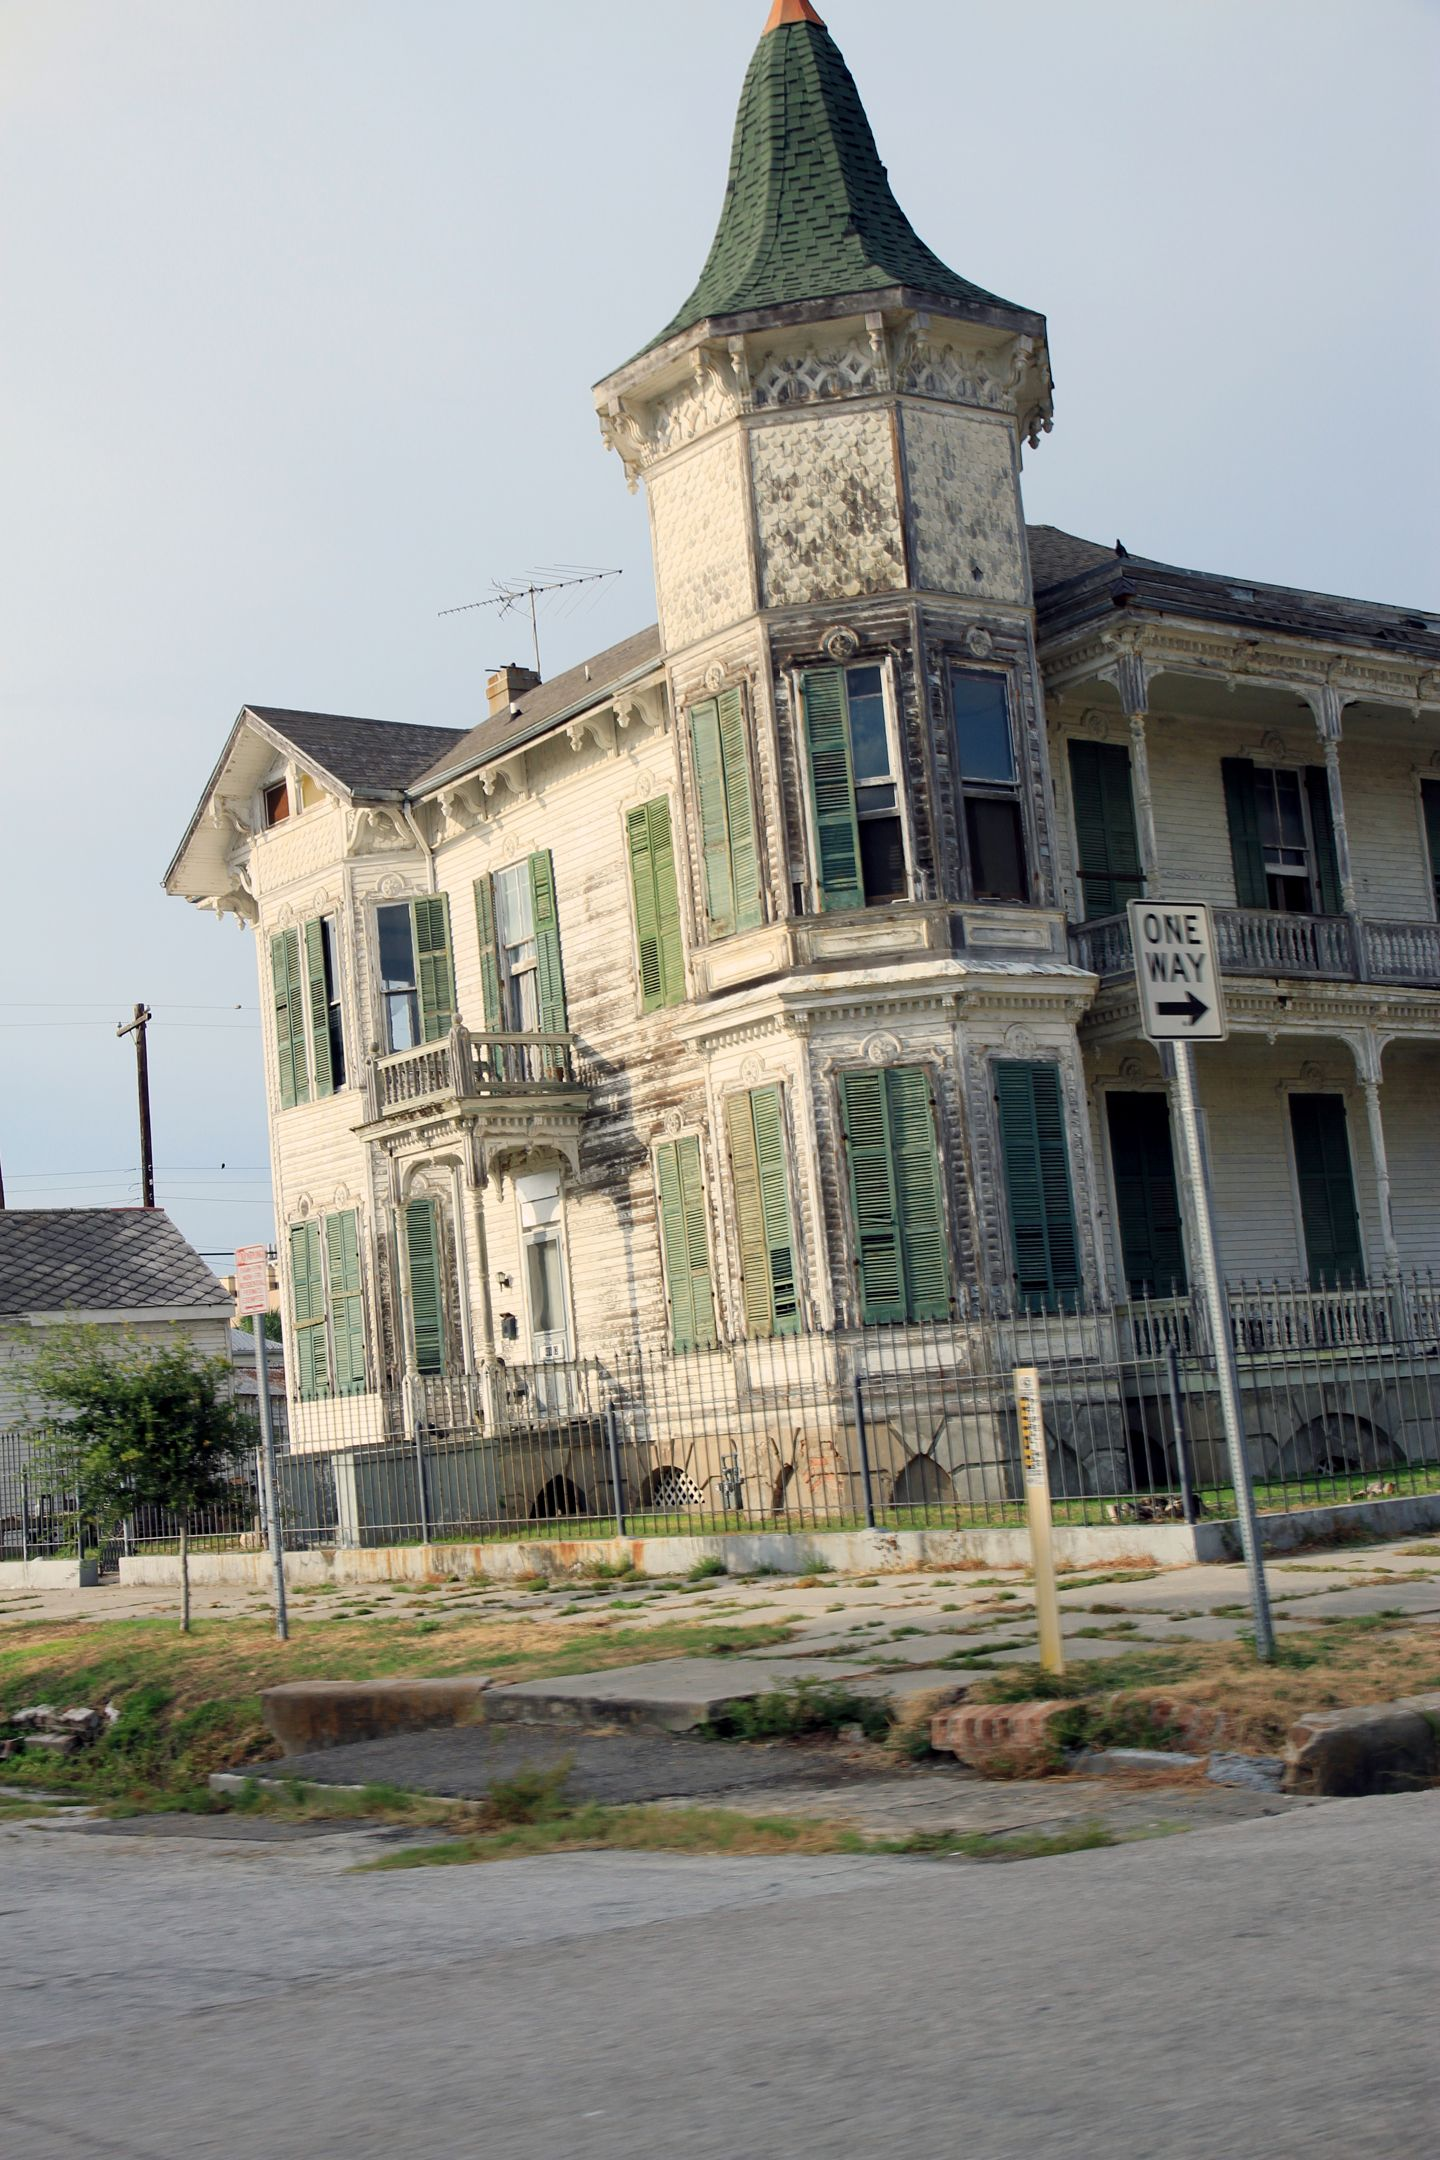 ABANDONED ~ Galveston Texas - Haunted beach house